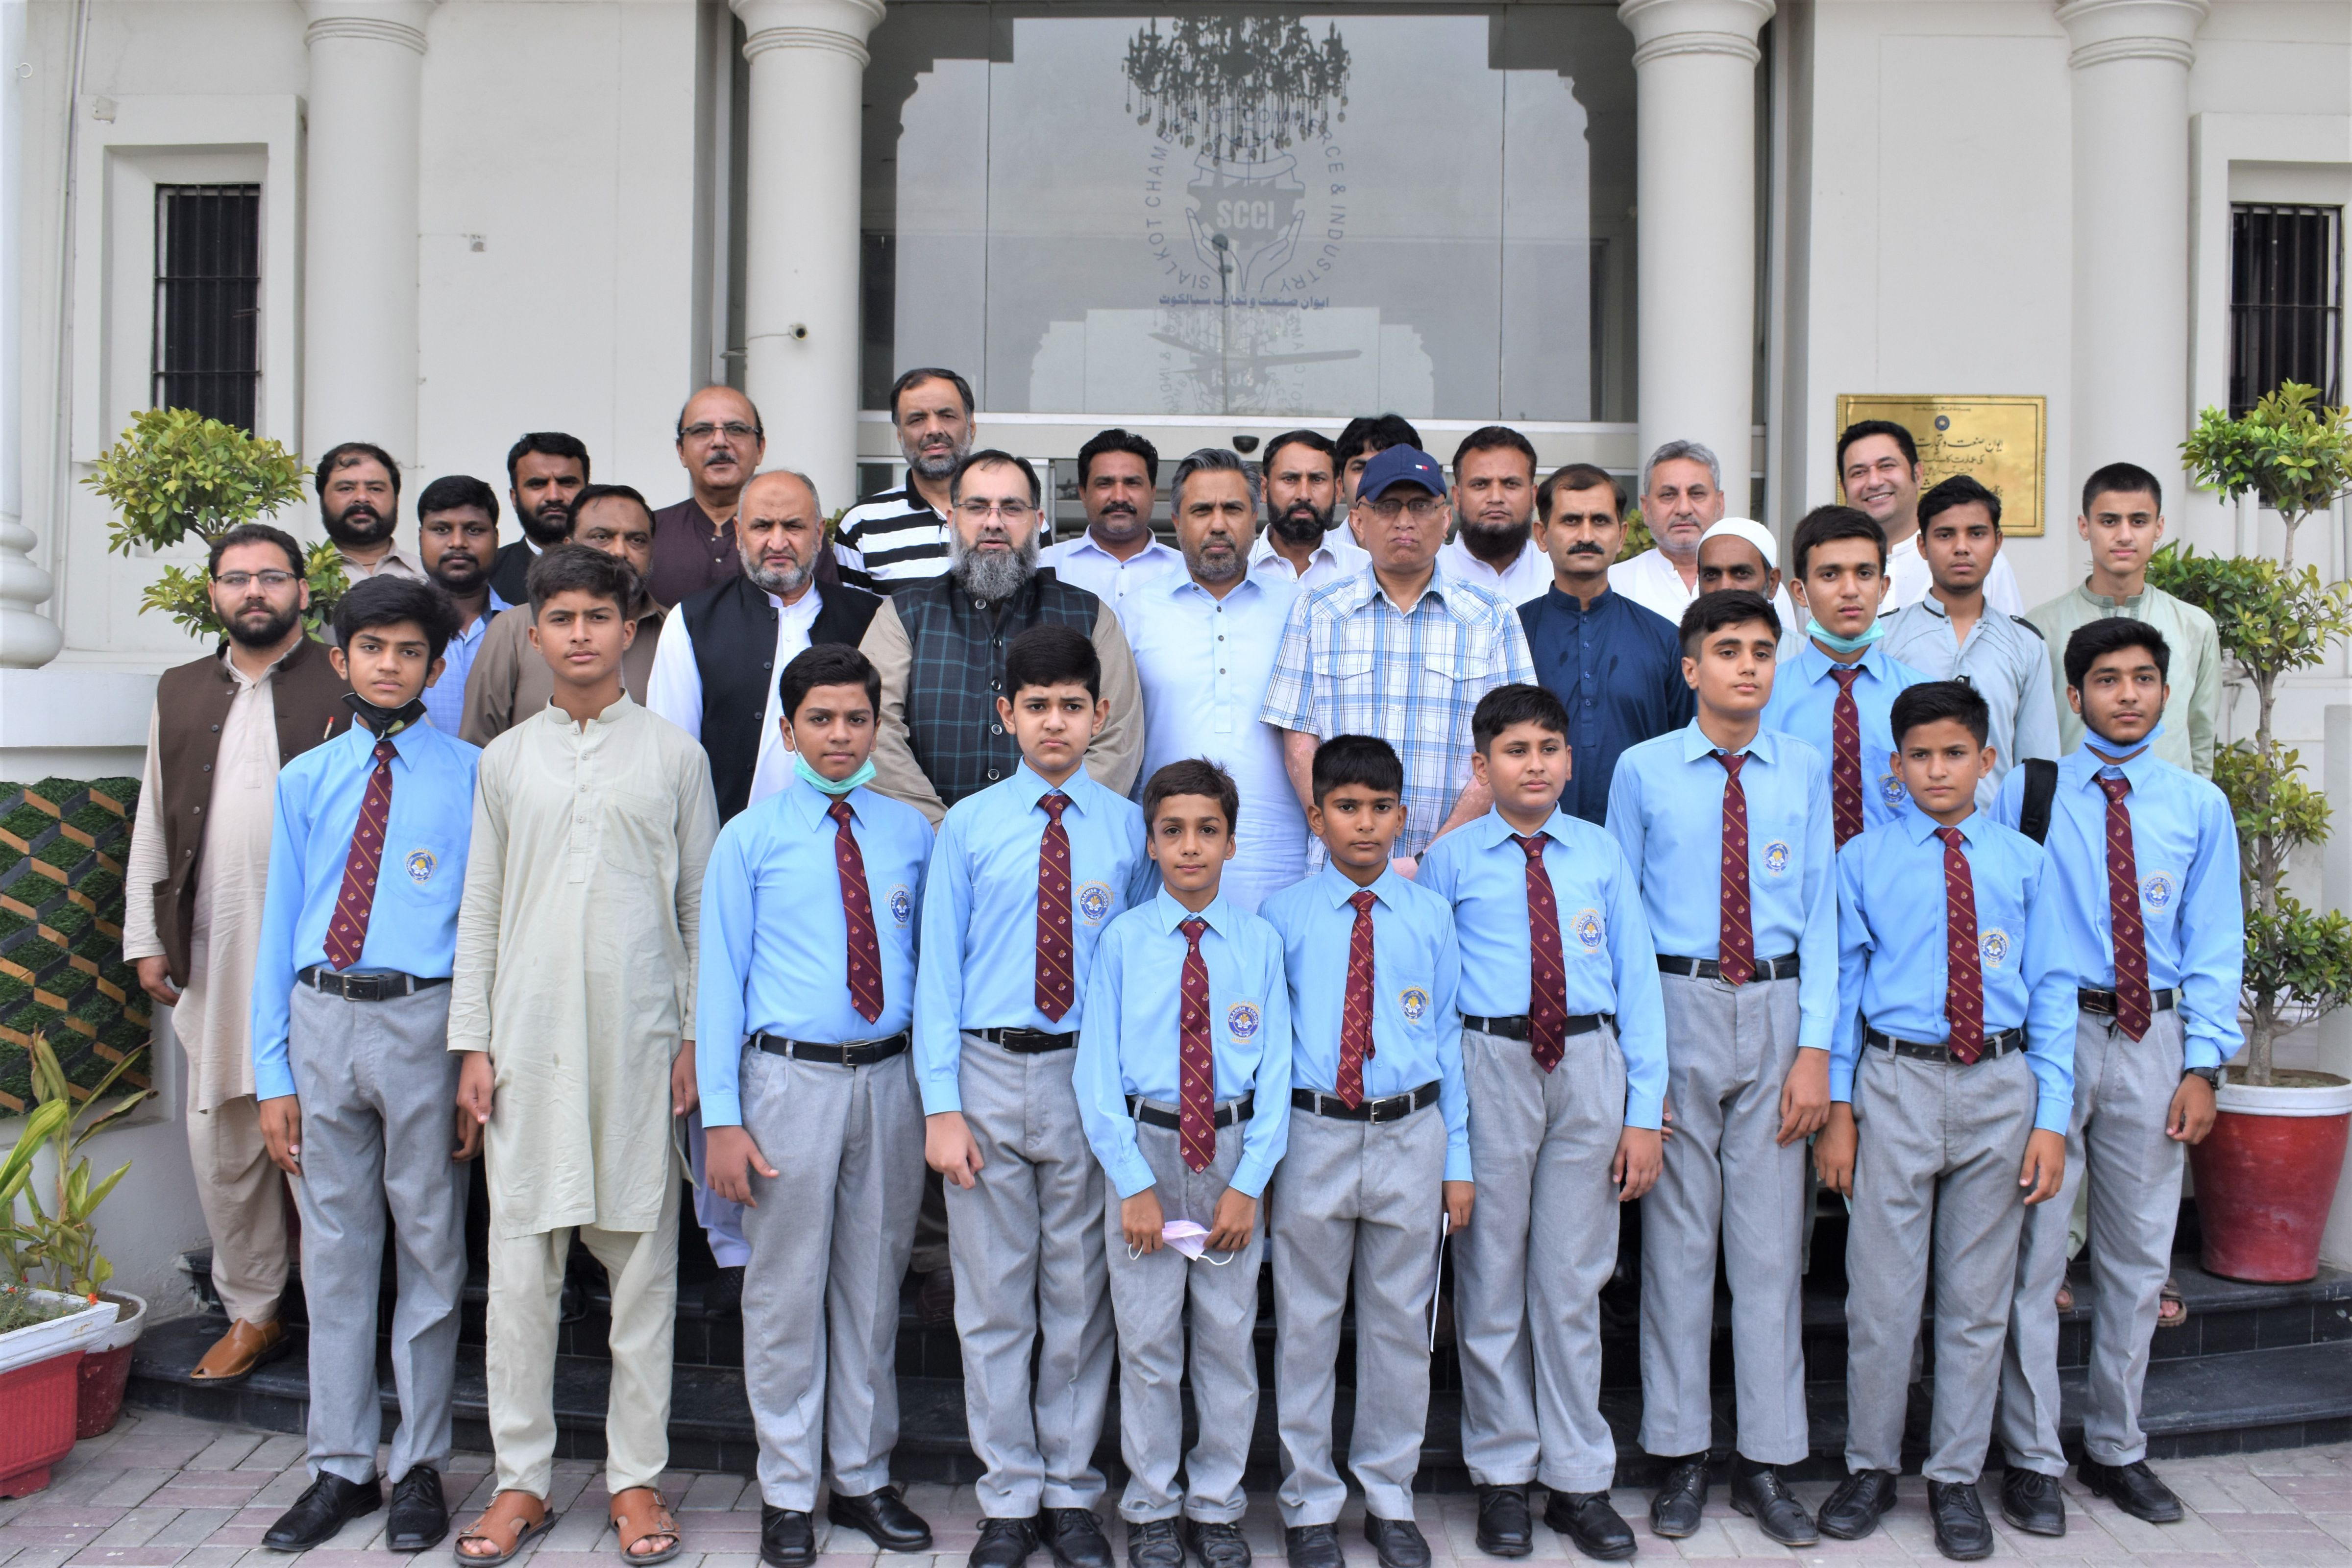 """On July 16, 2021, Mr. Qaisar Iqbal Baryar, President, SCCI presided over """"Annual Prize Distribution Ceremony of Toppers, Session 2021 from Govt. Pilot Secondary School, Centre of Excellence (Boys), Sialkot"""" held at Sialkot Chamber of Commerce & Industry. Mr. Qaisar Iqbal Baryar and Mr. Khuram Aslam, Senior Vice President, SCCI distributed the Prizes among the students and congratulated all the prize-winners for their achievement"""